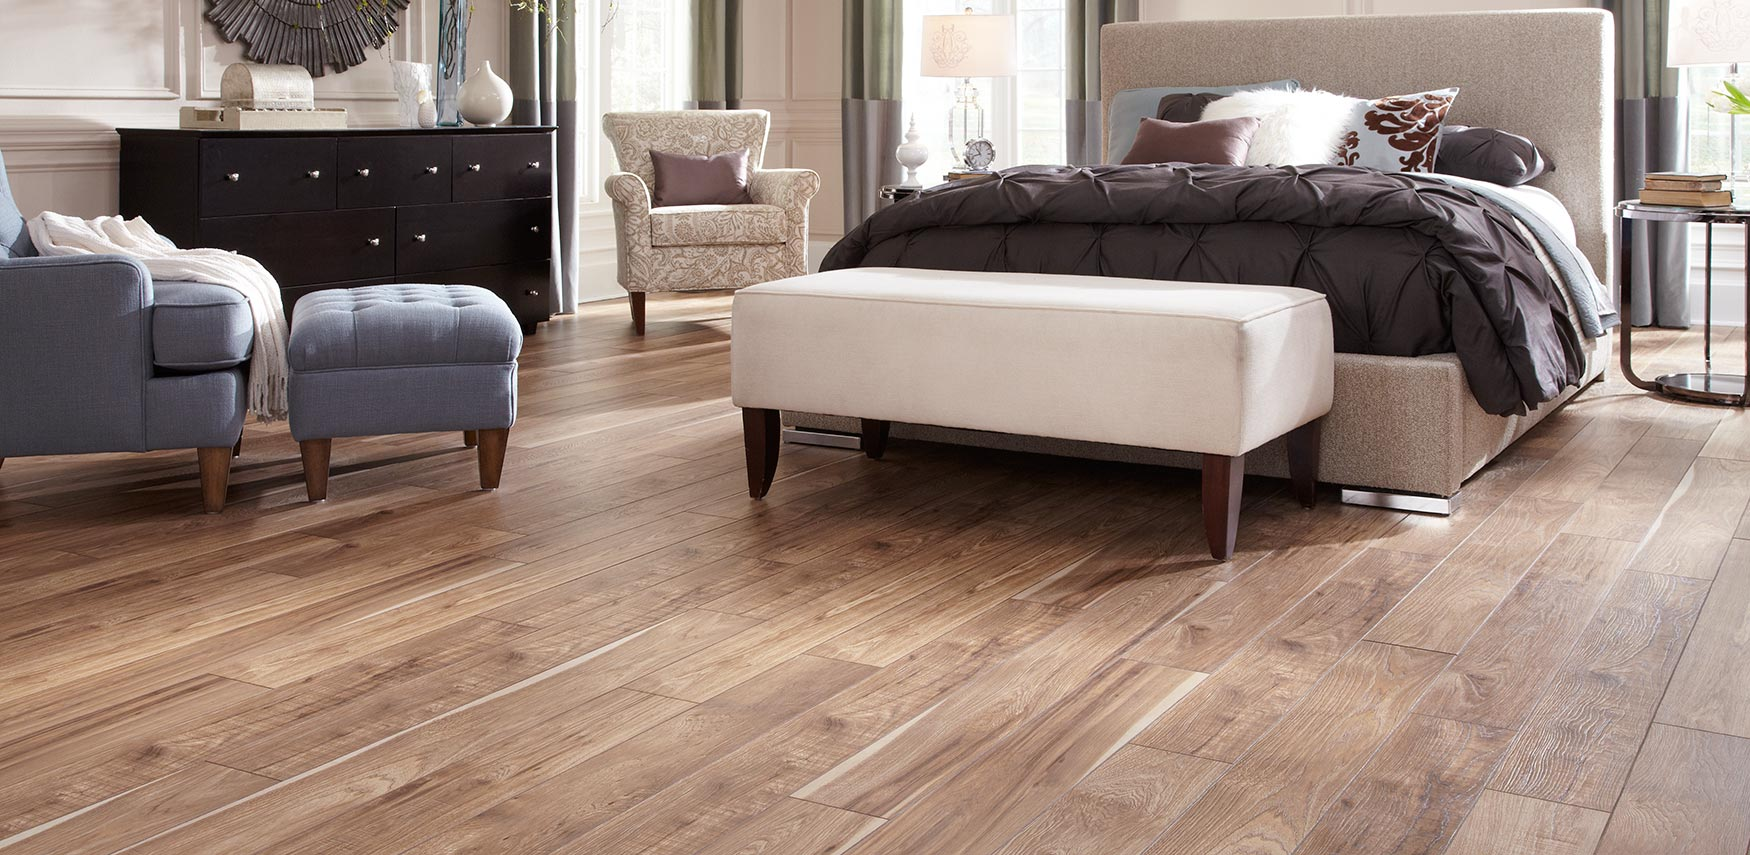 Mannington Flooring Resilient Laminate Hardwood Luxury Vinyl - Cheapest place for laminate flooring